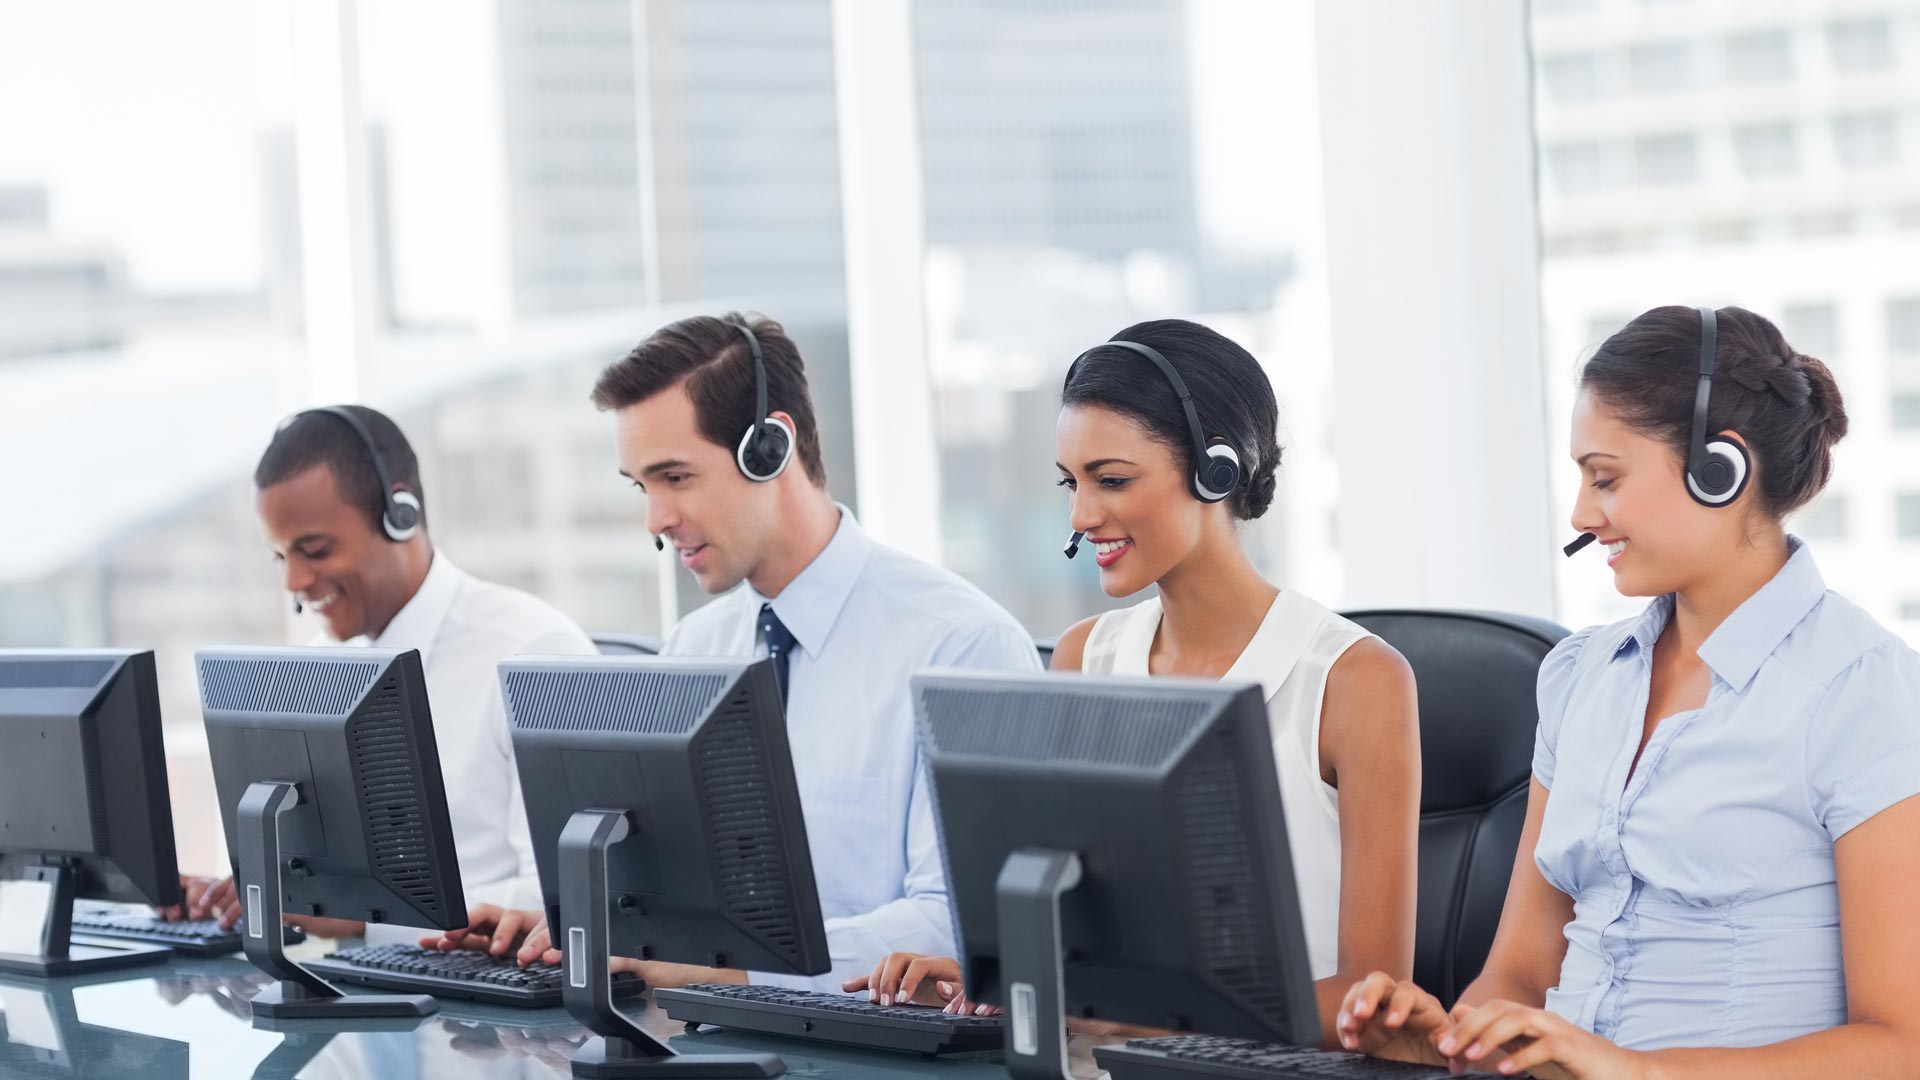 telecom call center research technology essay Read chapter 1 the importance of telecommunications and telecommunications research:  a judgment call applications of information technology range from.